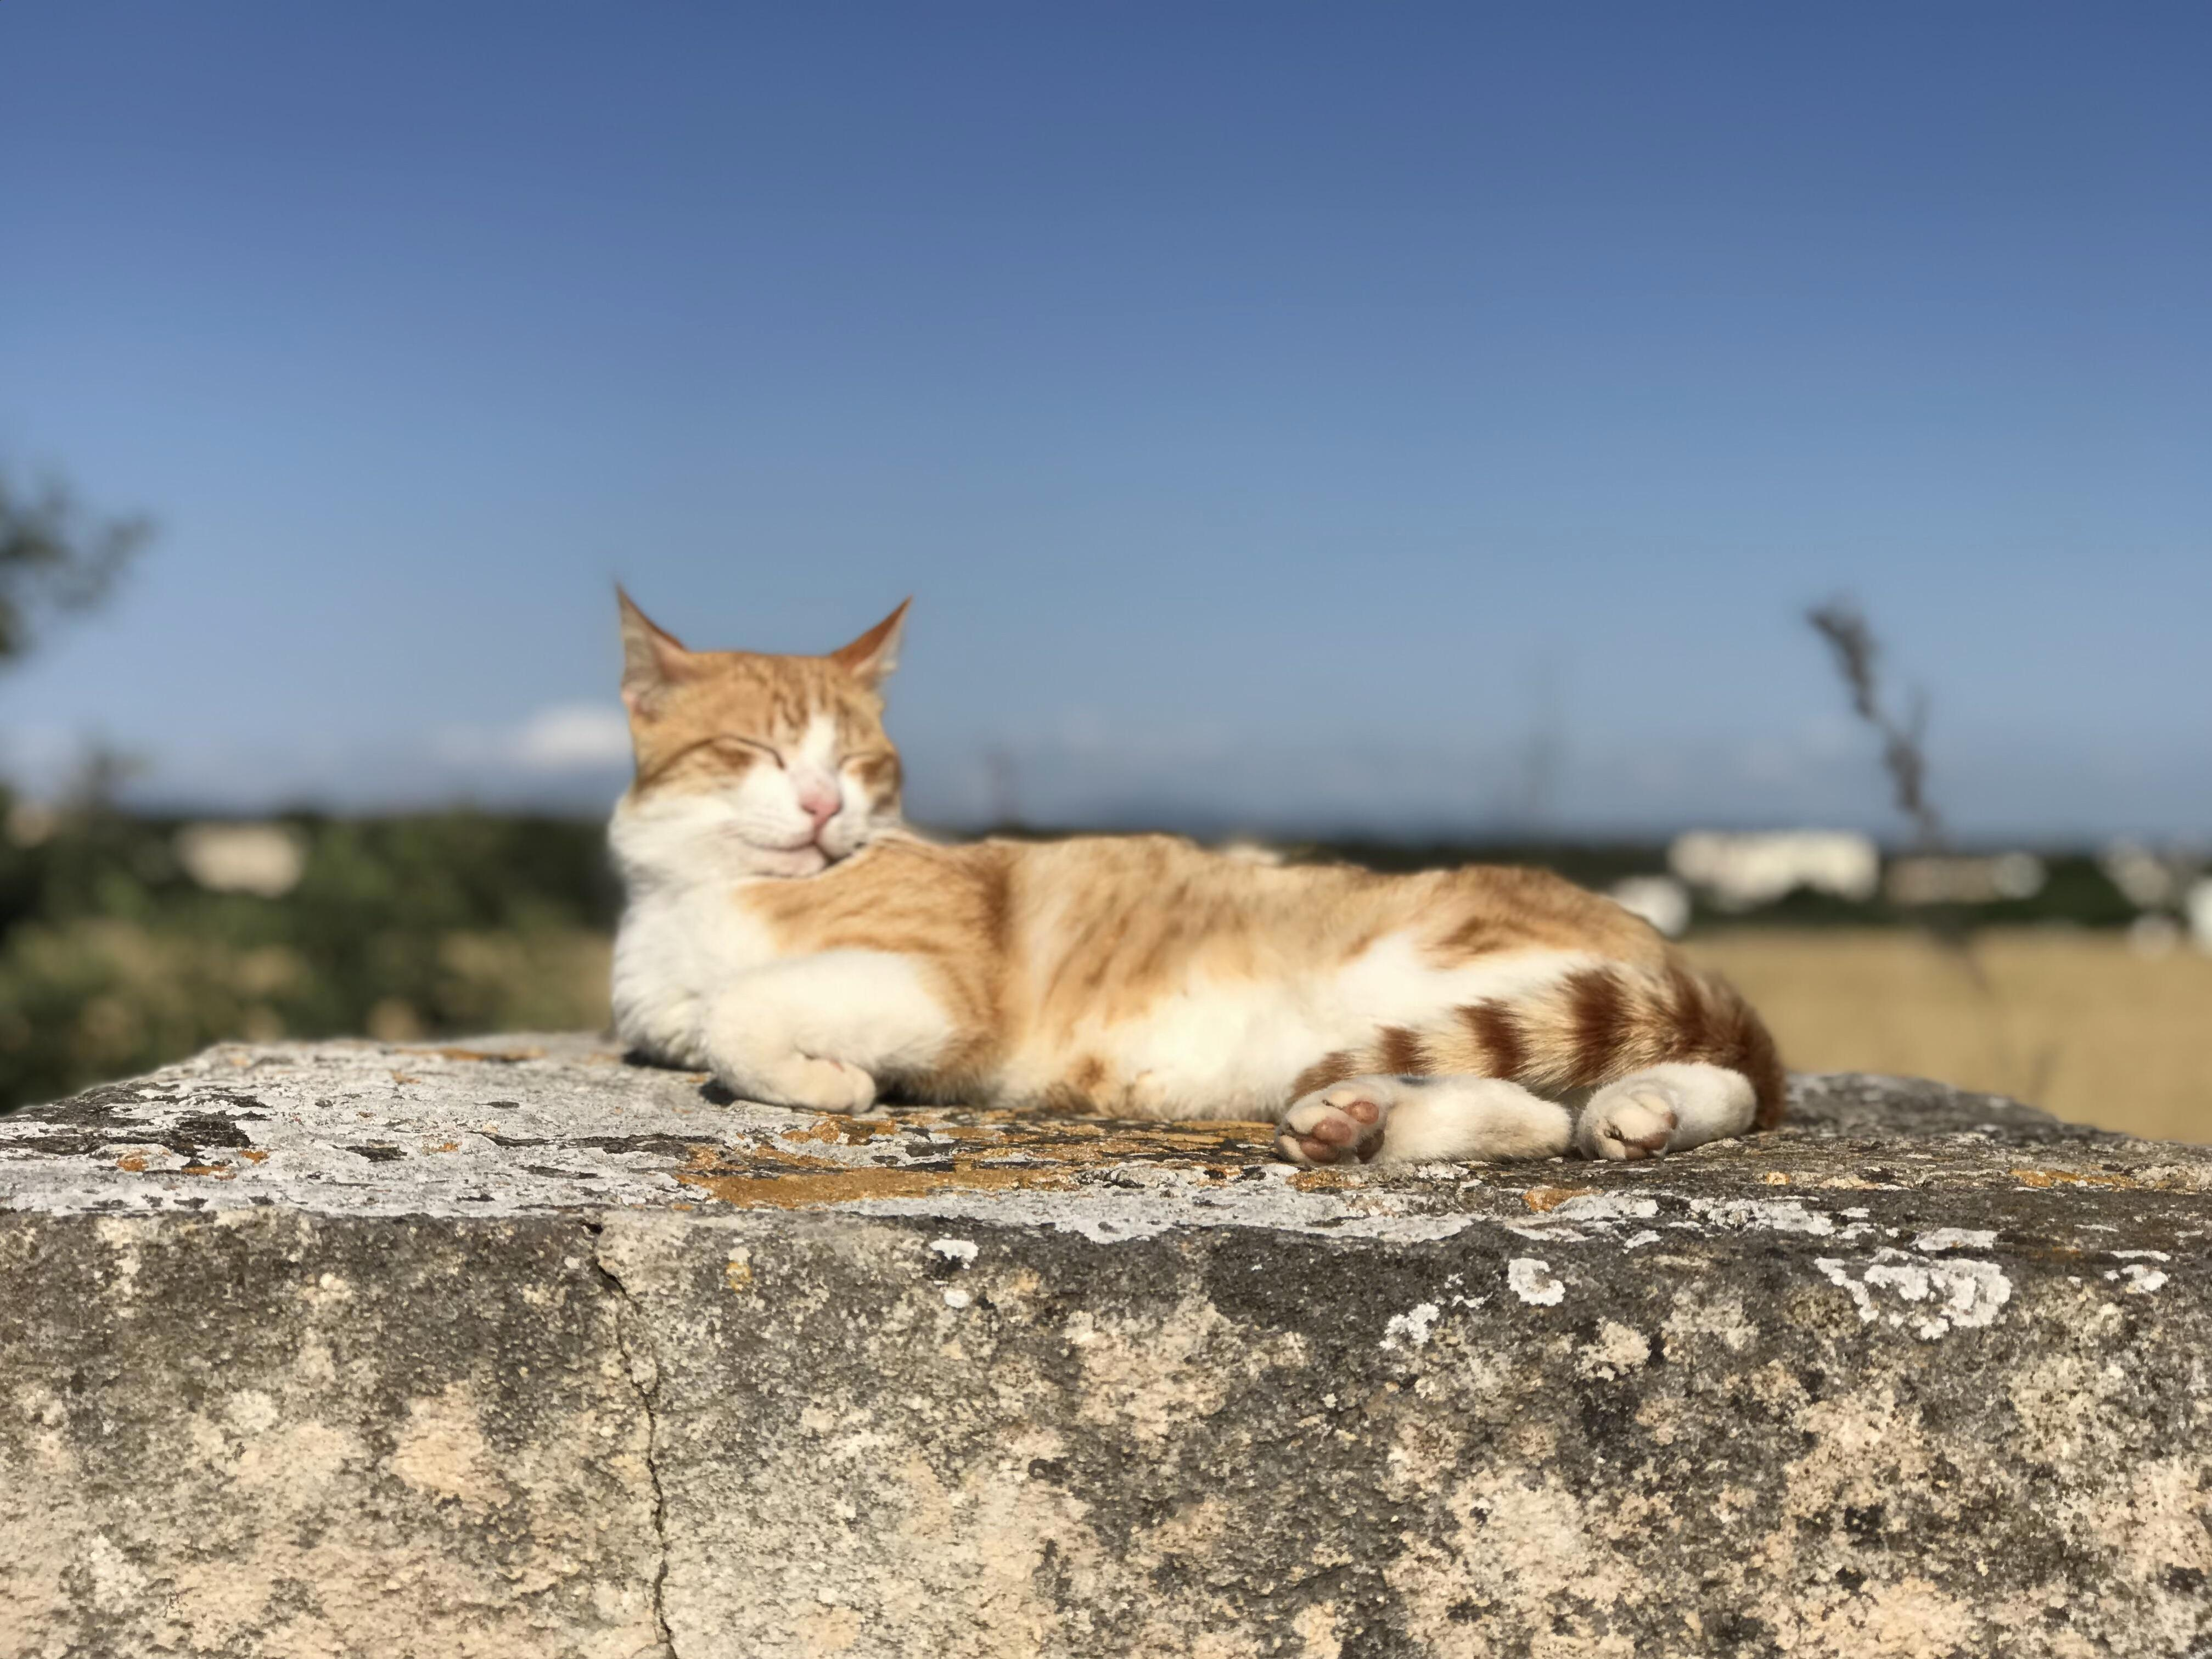 Saw this guy sunbathing in sicily